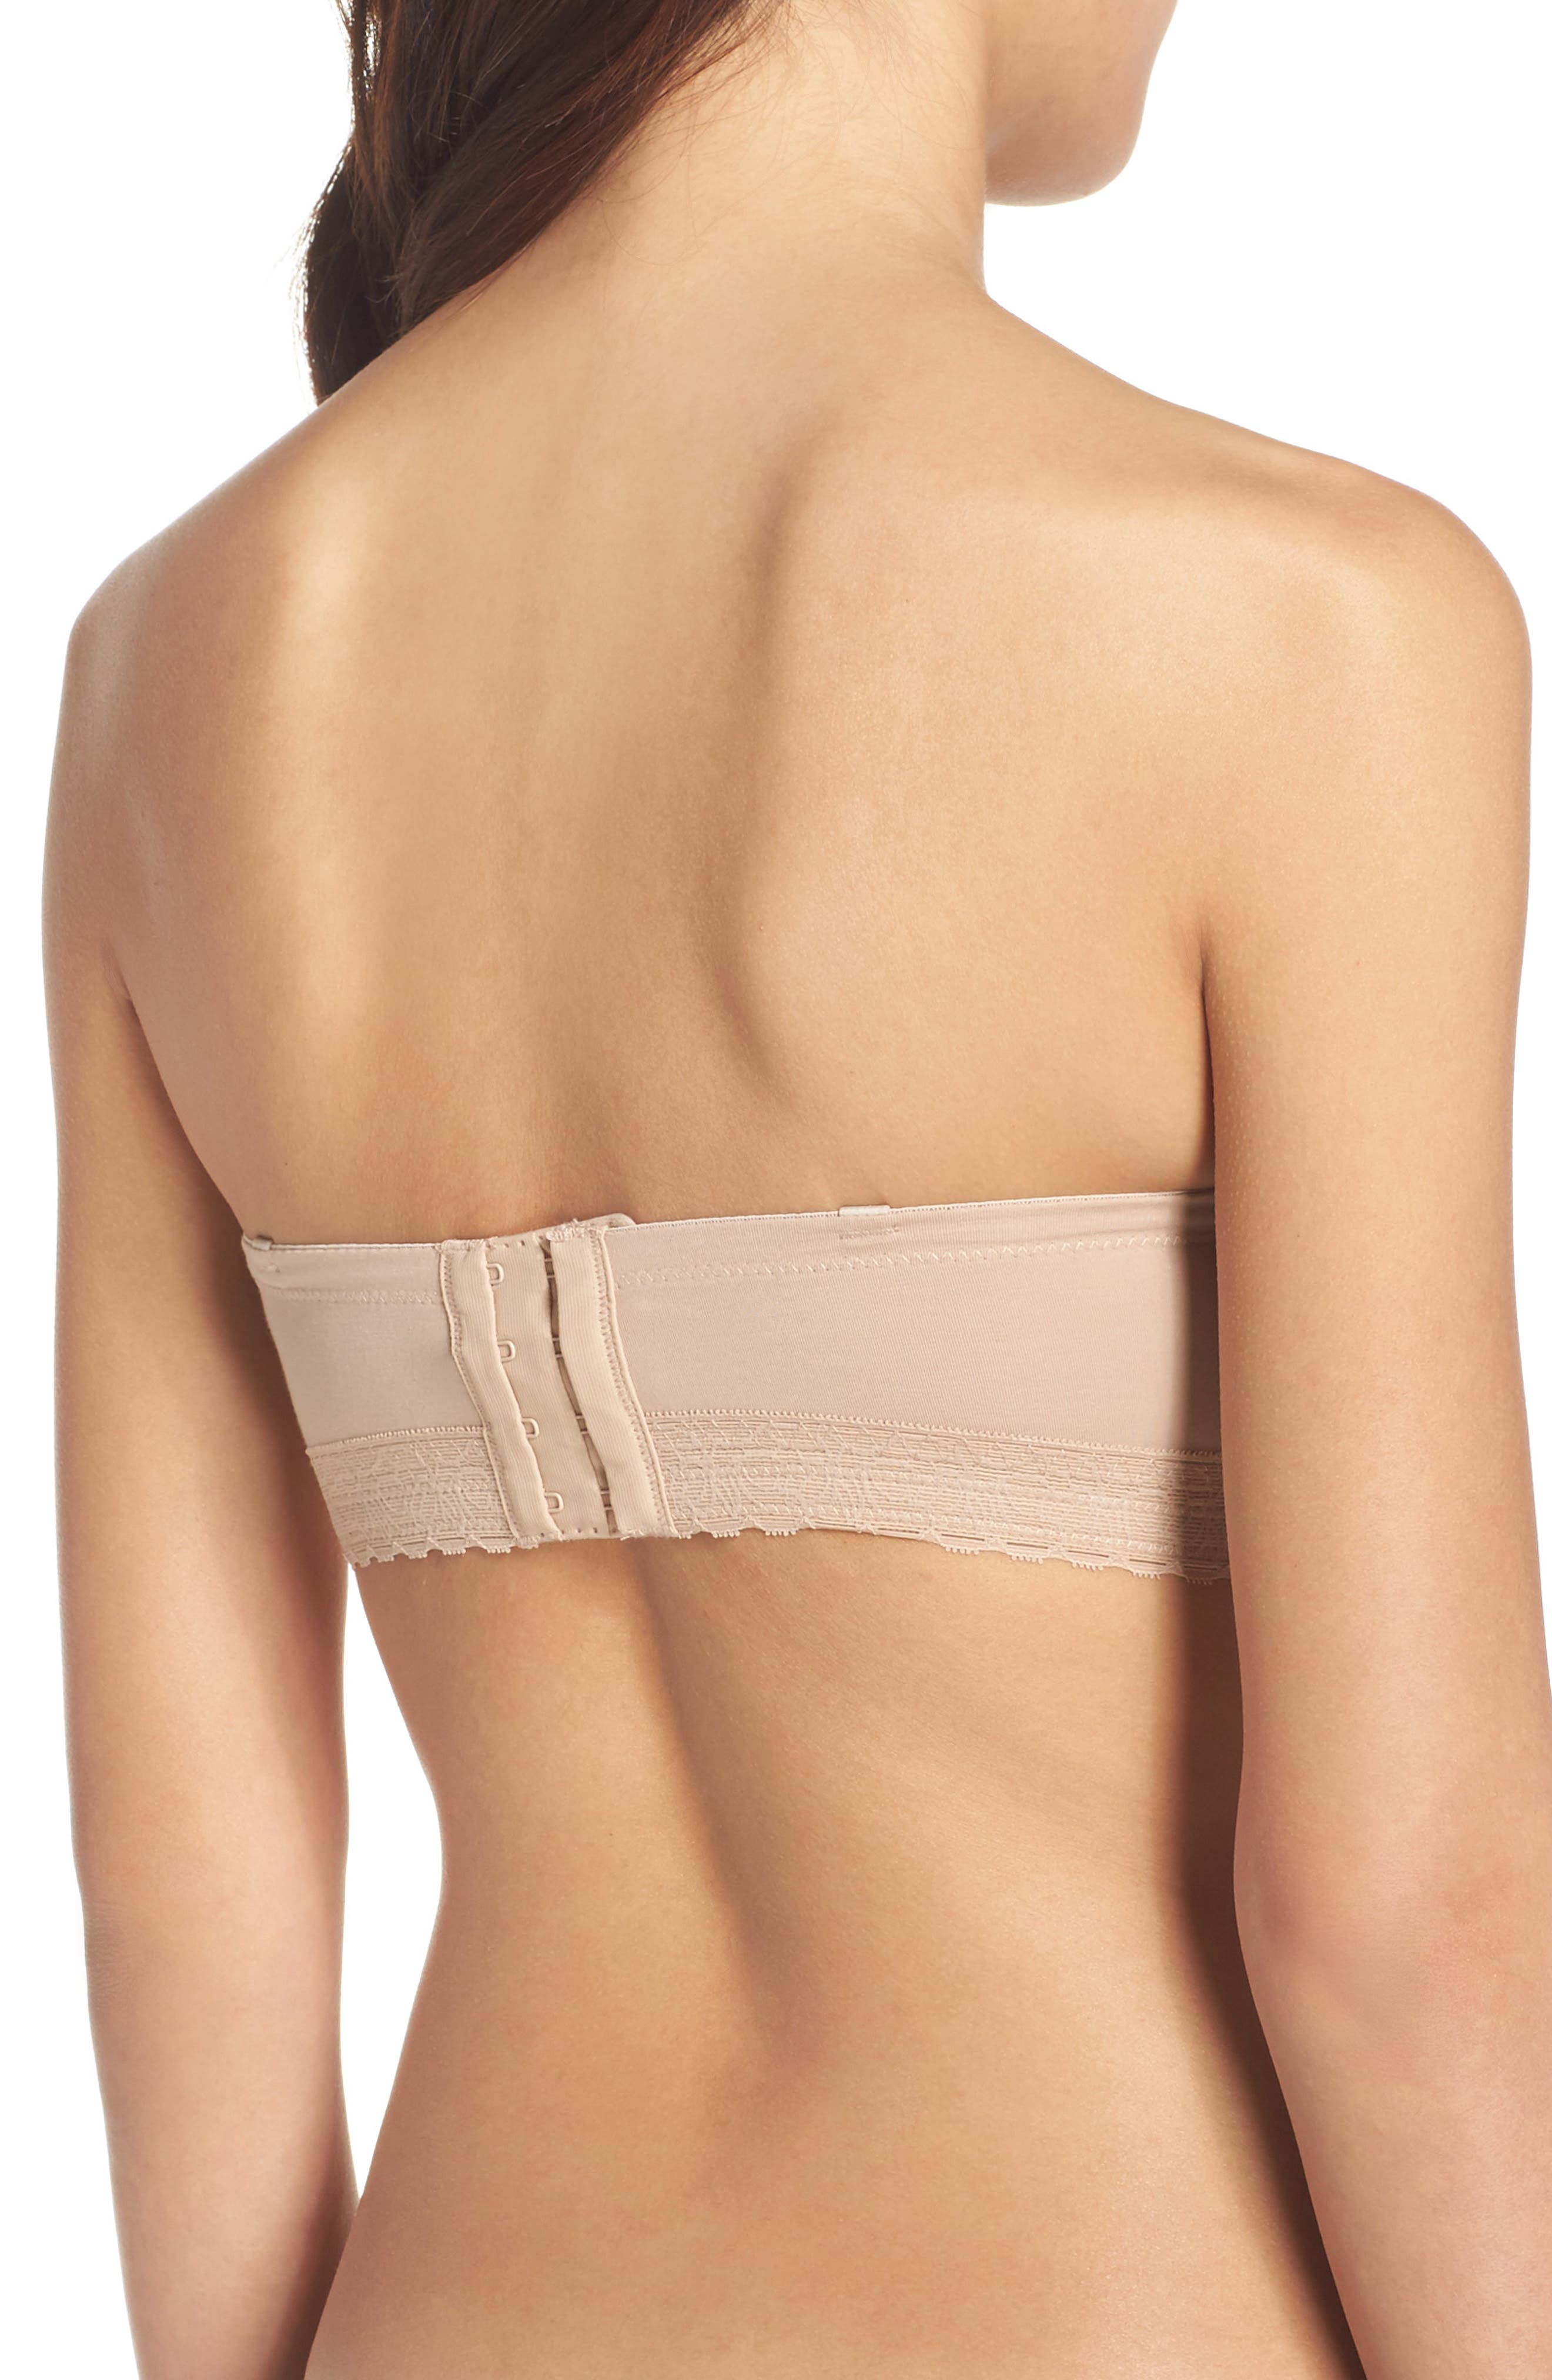 'Truly Smooth' Strapless Underwire Bra,                             Alternate thumbnail 2, color,                             Cafe